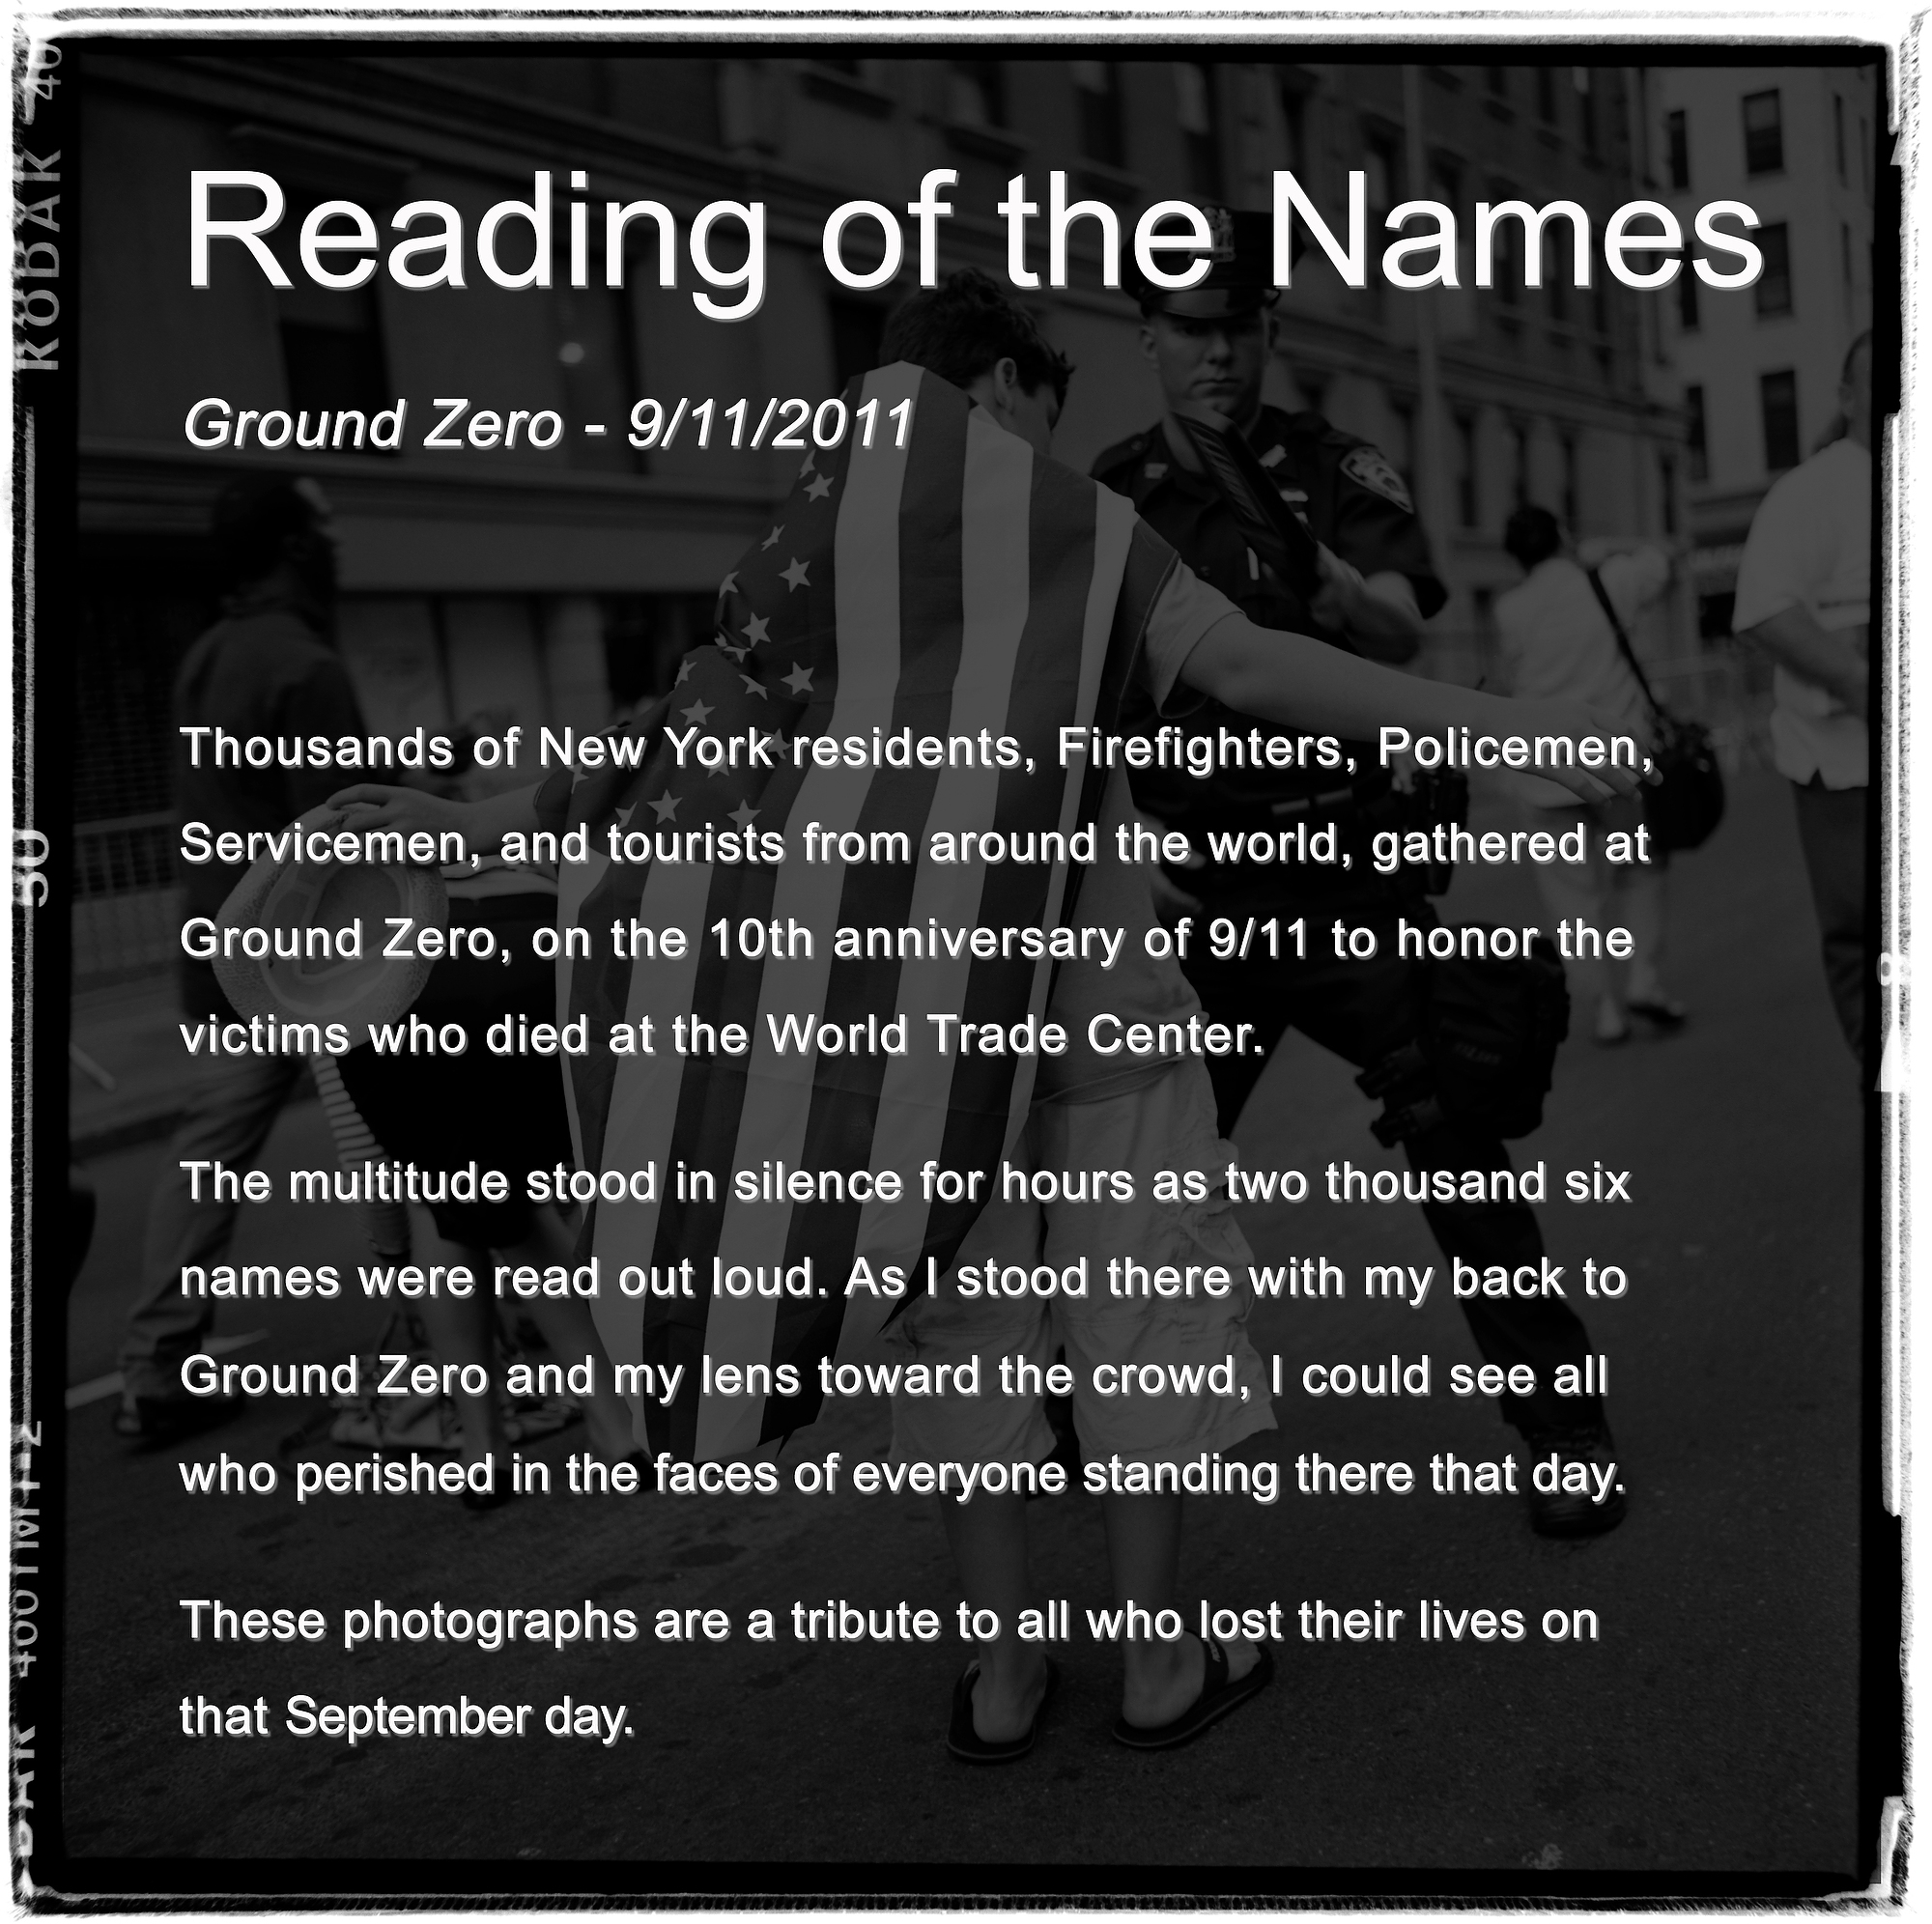 reading of the names_01.jpg